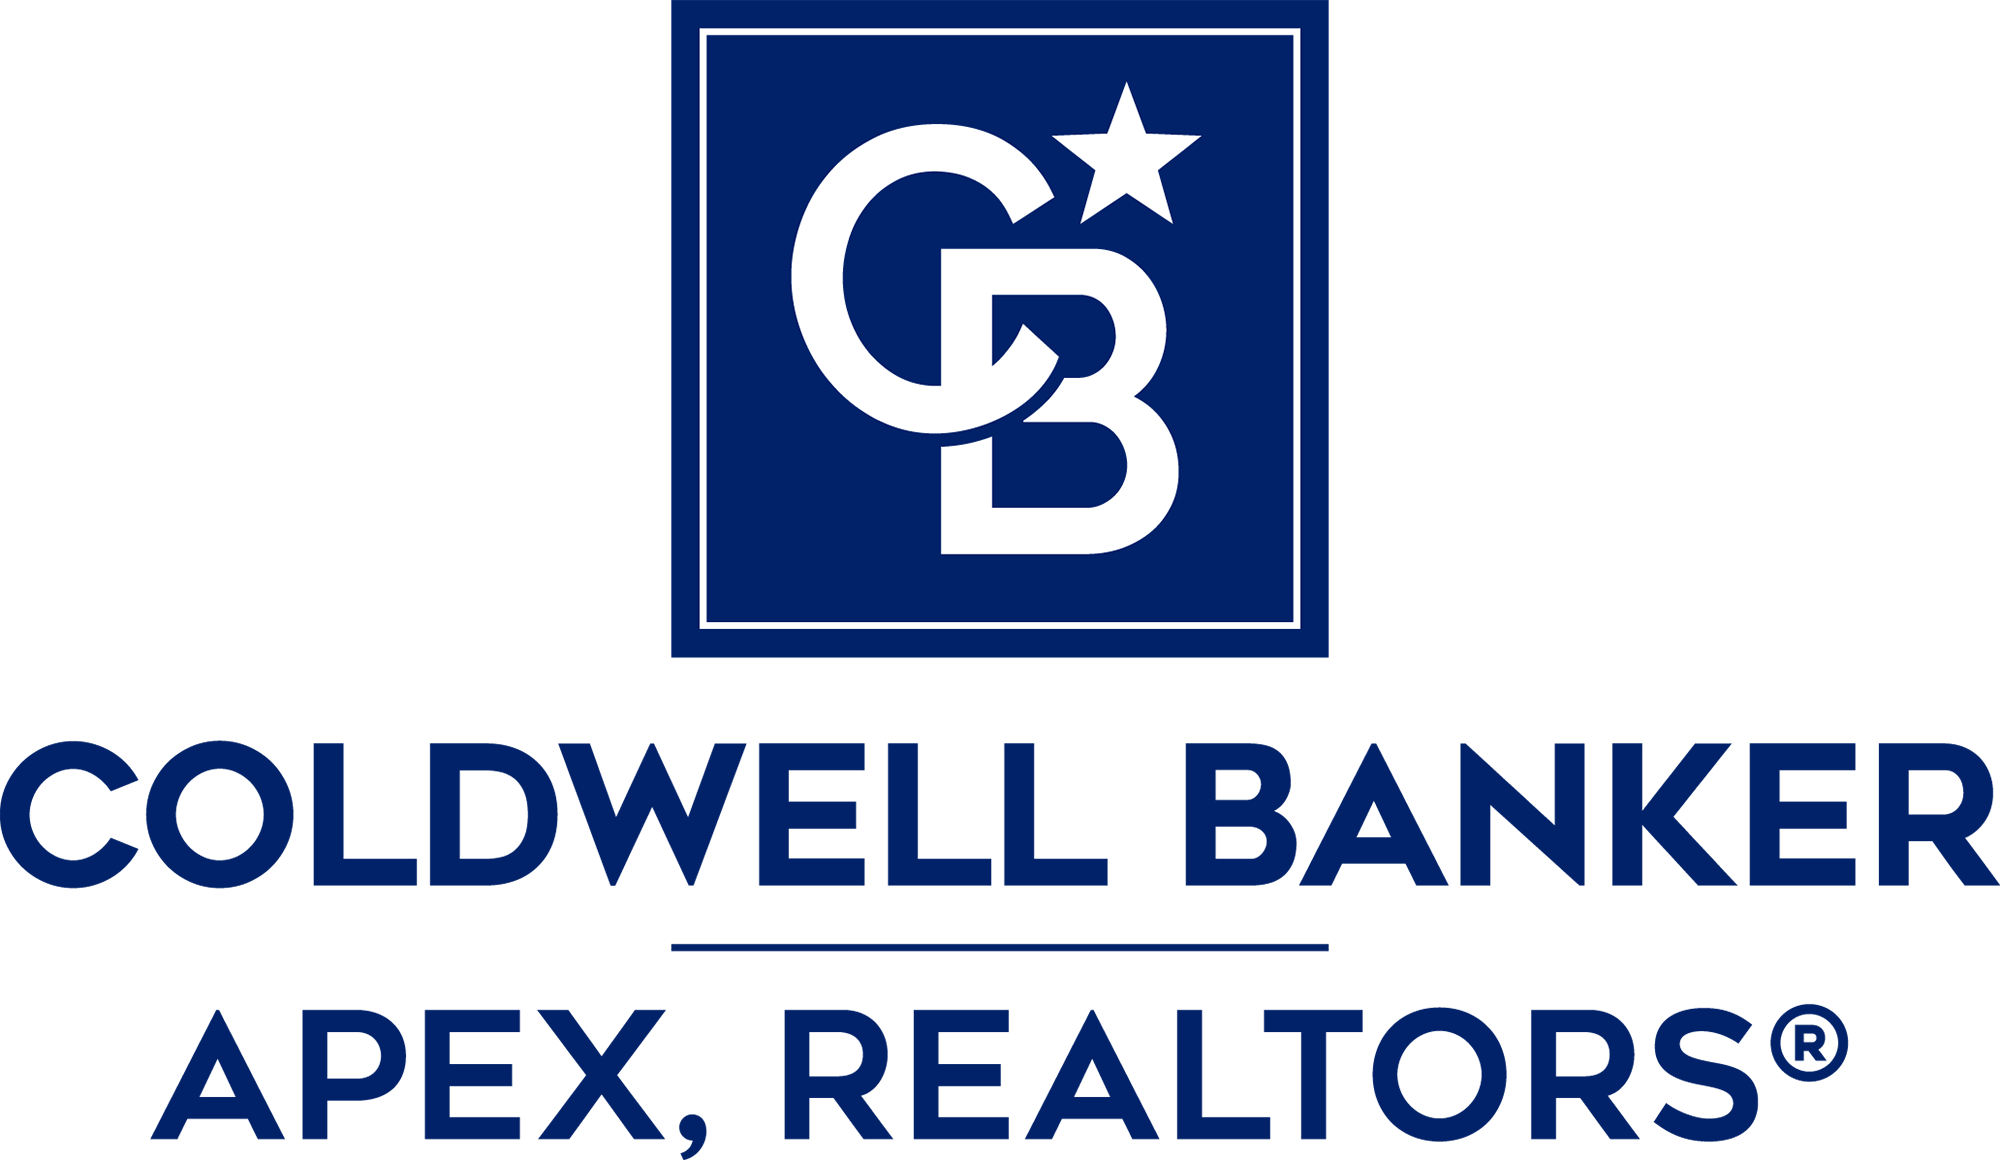 Fran Good - Coldwell Banker Apex Logo